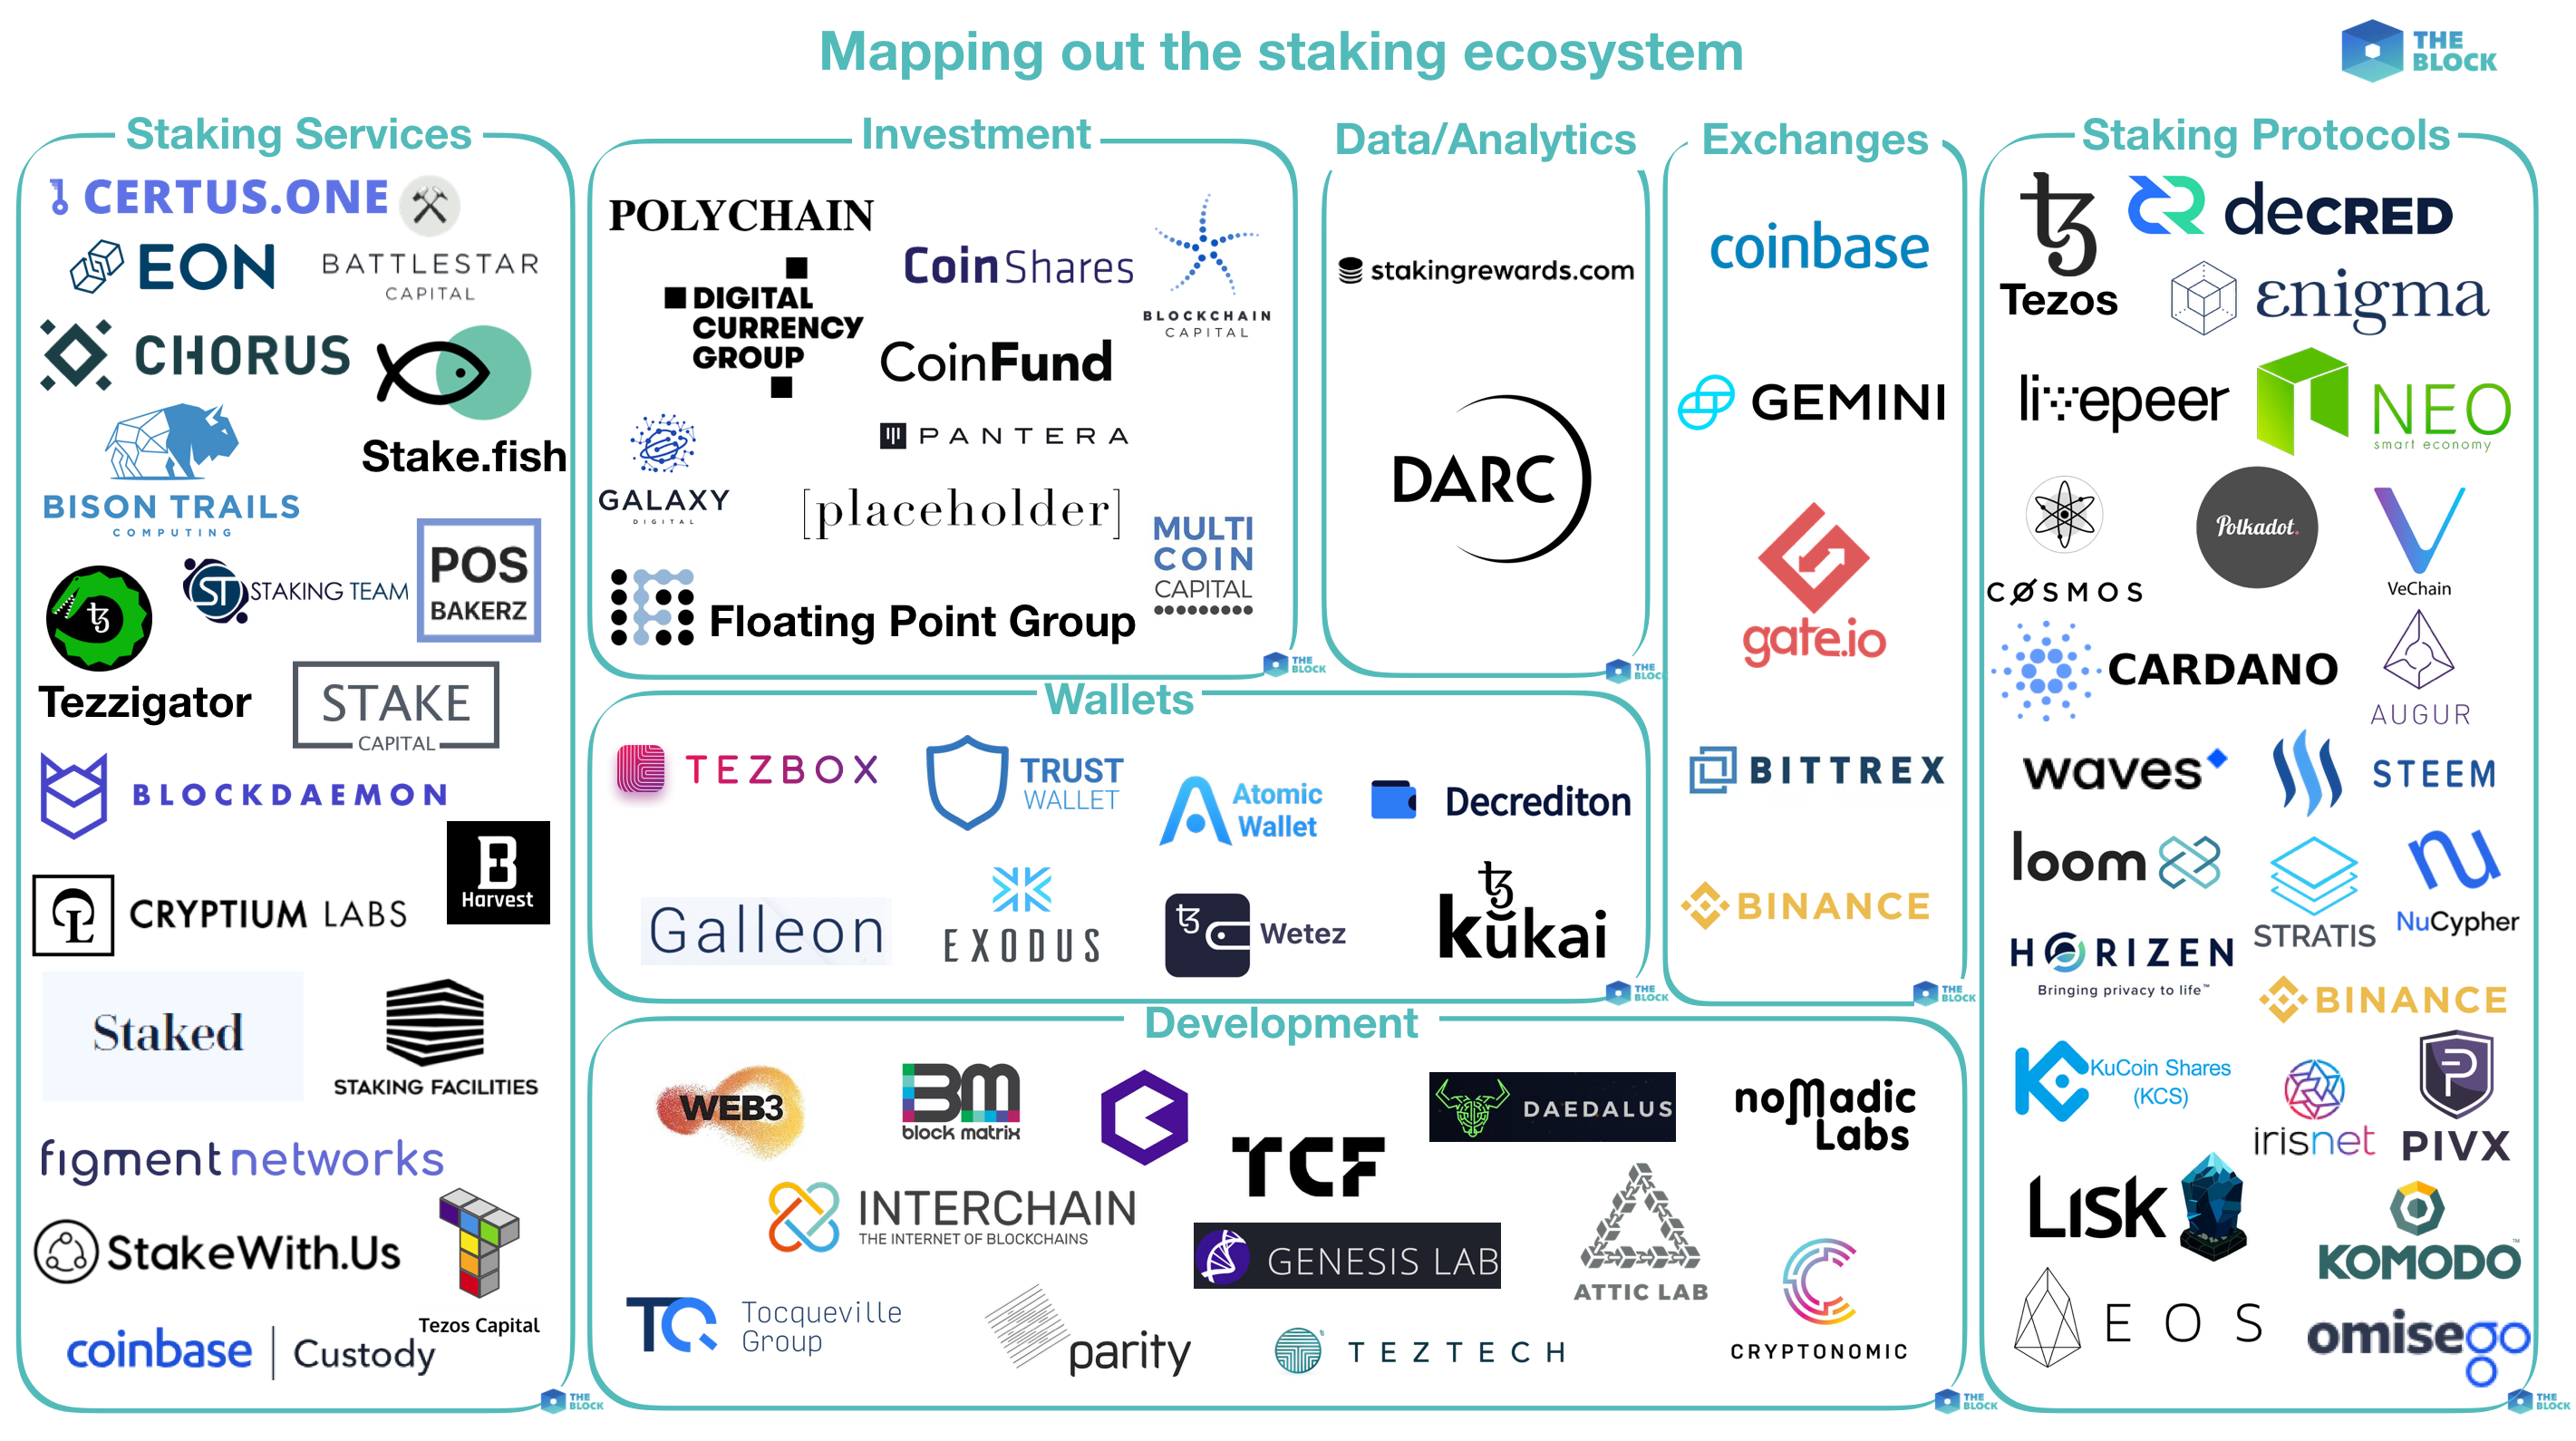 Mapping out the staking ecosystem - The Block